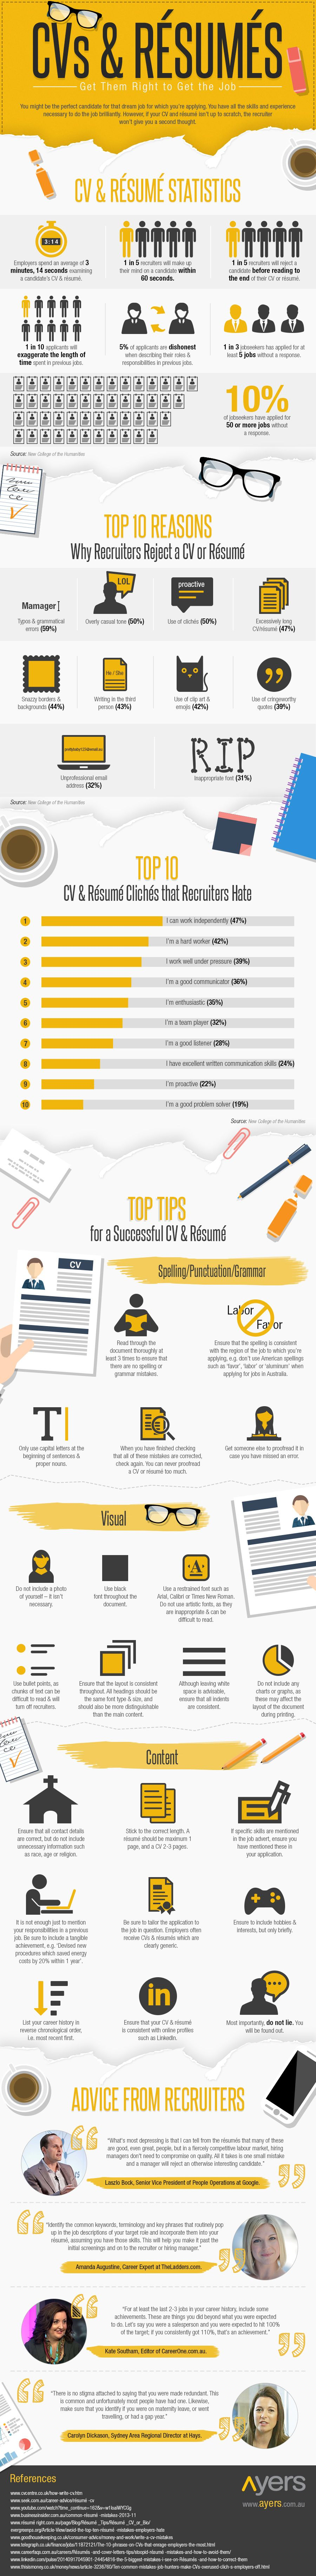 Your Resume Has 3 Minutes 14 Seconds To Make A Good Expression